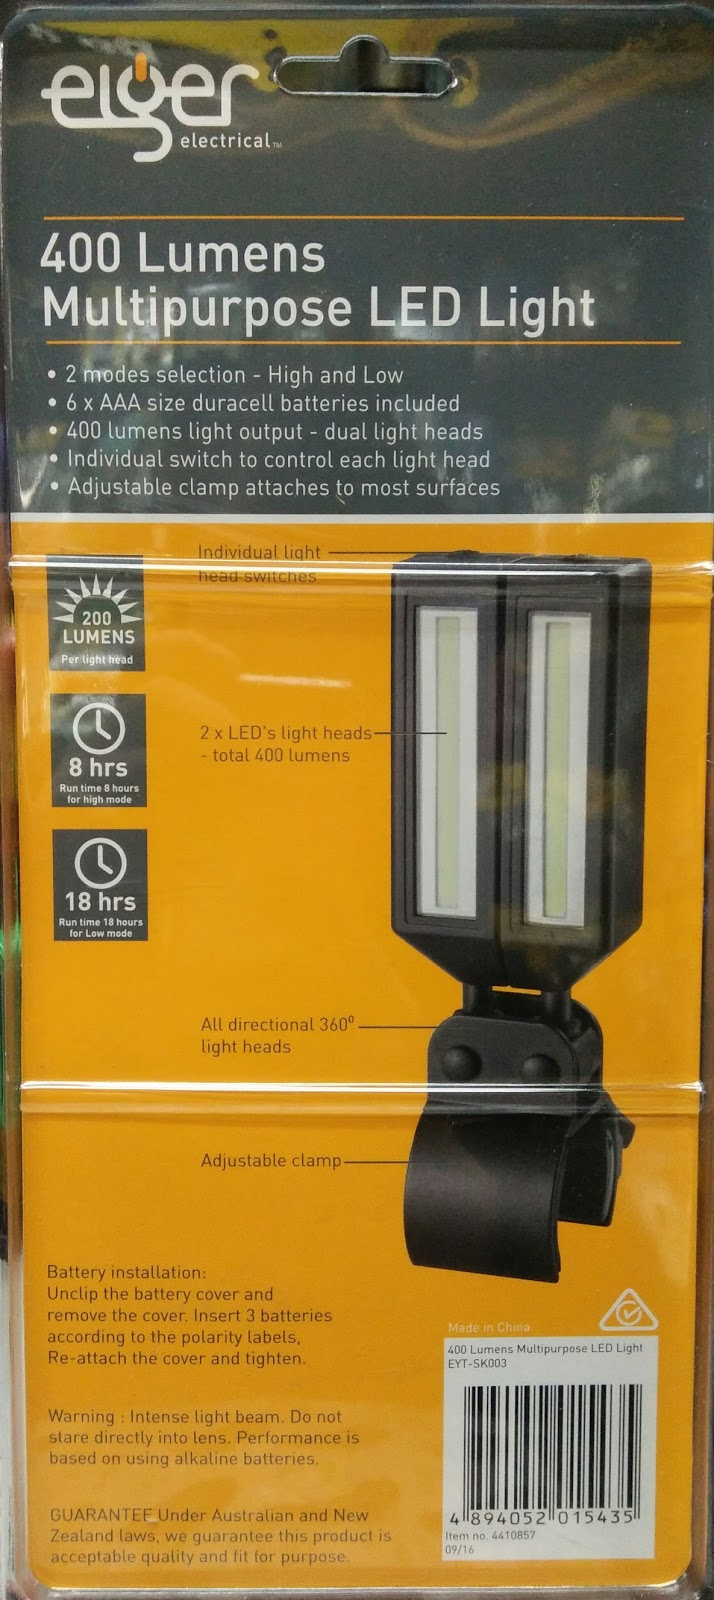 Eiger Multipurpose Led Light 400Lumens @ RM 219 & SKL DIY Uptown: Eiger Multipurpose Led Light 400Lumens @ RM 219